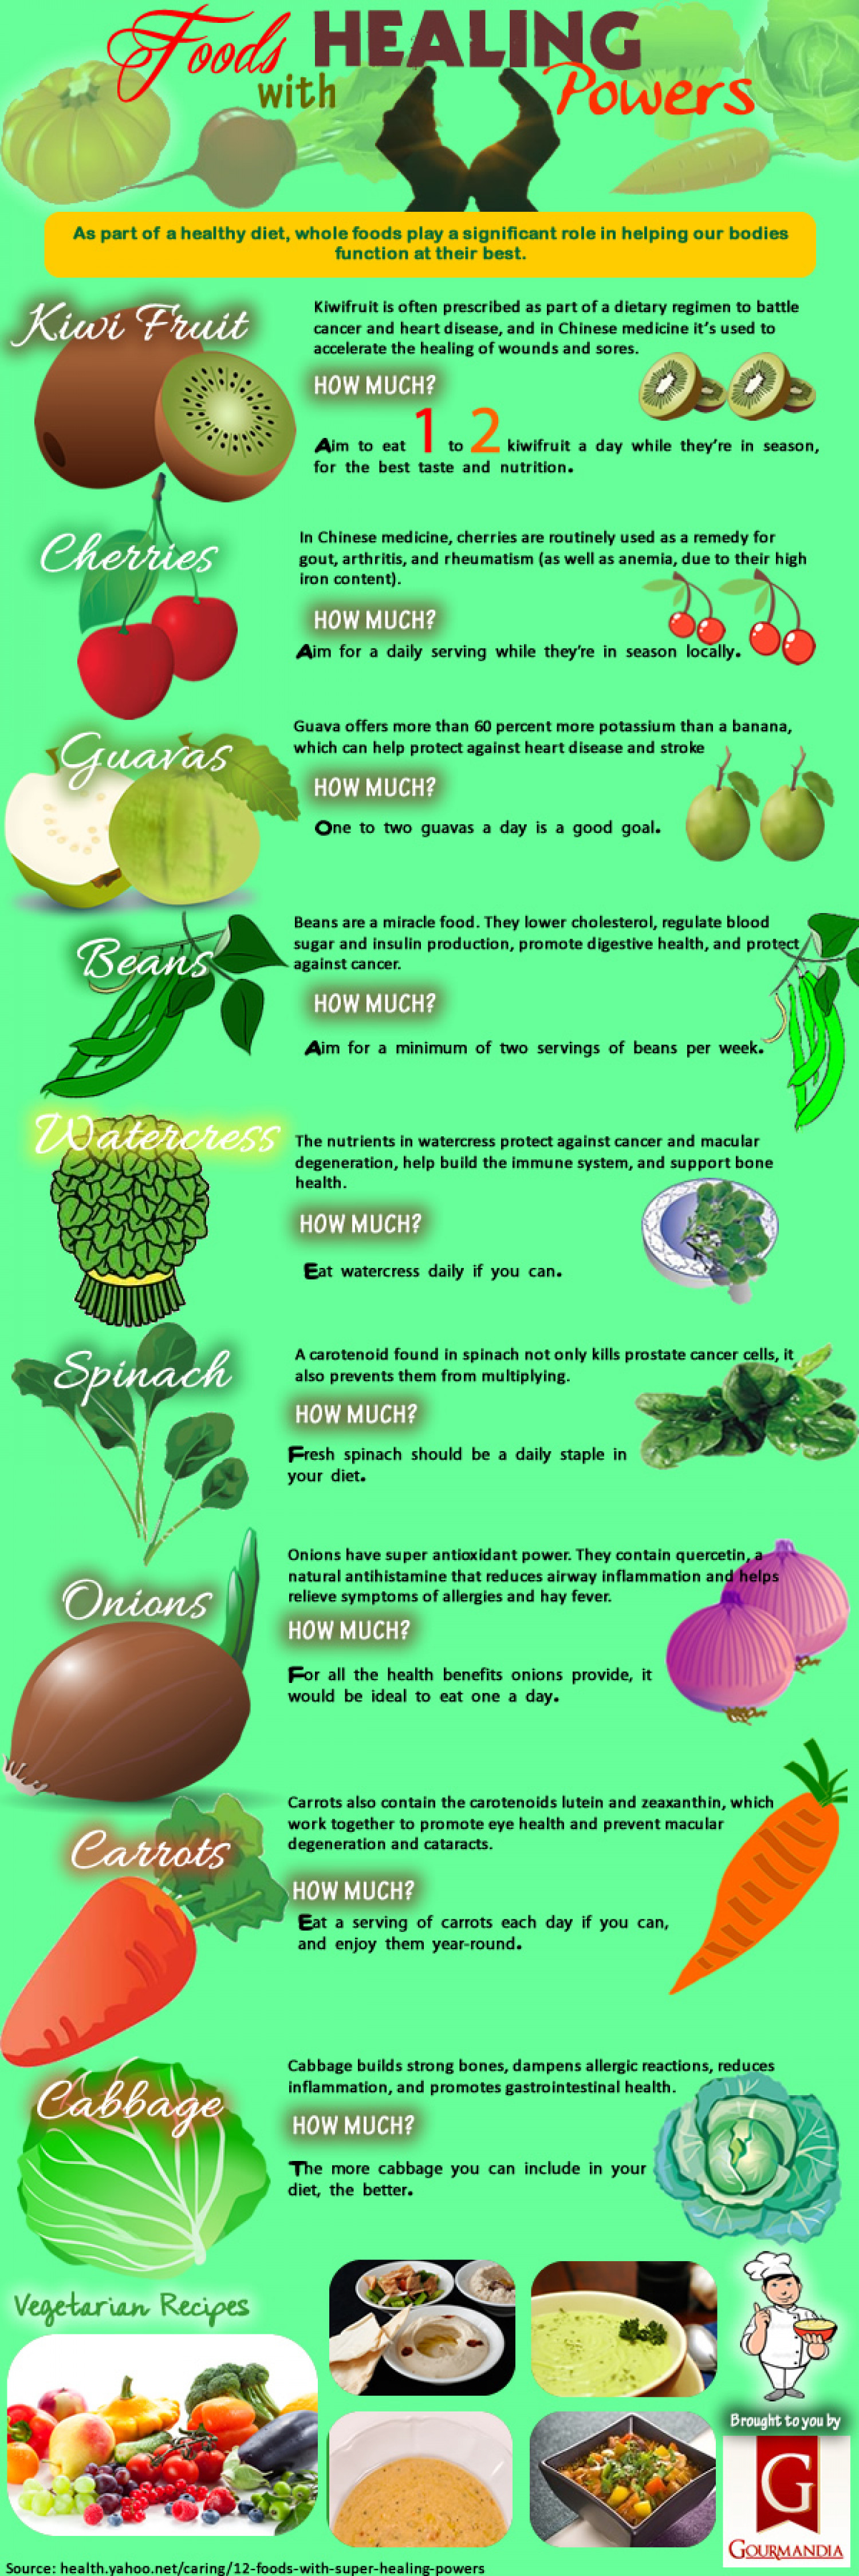 Foods With Healing Powers Infographic